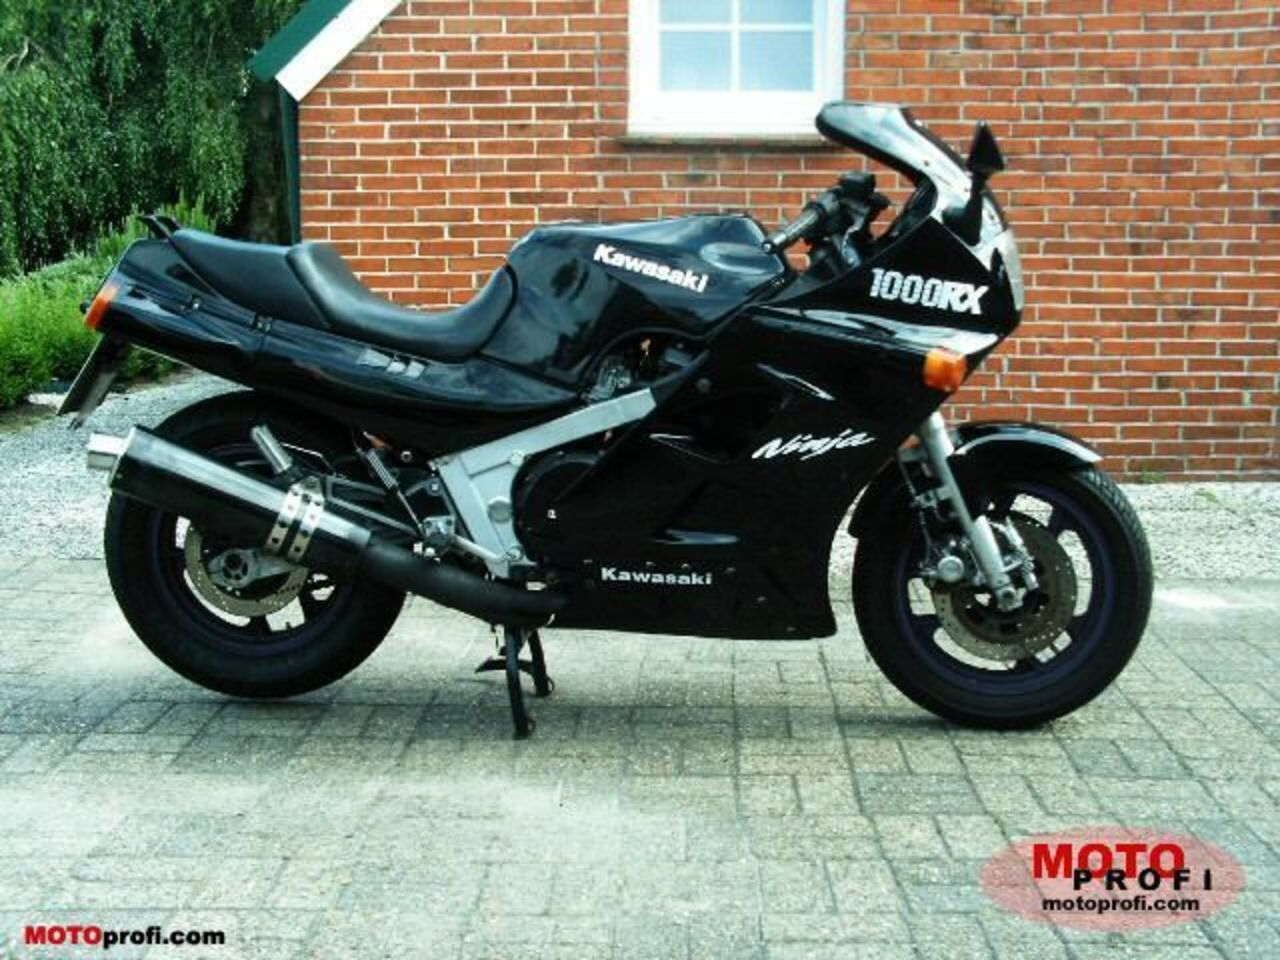 kawasaki gpz 1000 rx stealth. Black Bedroom Furniture Sets. Home Design Ideas